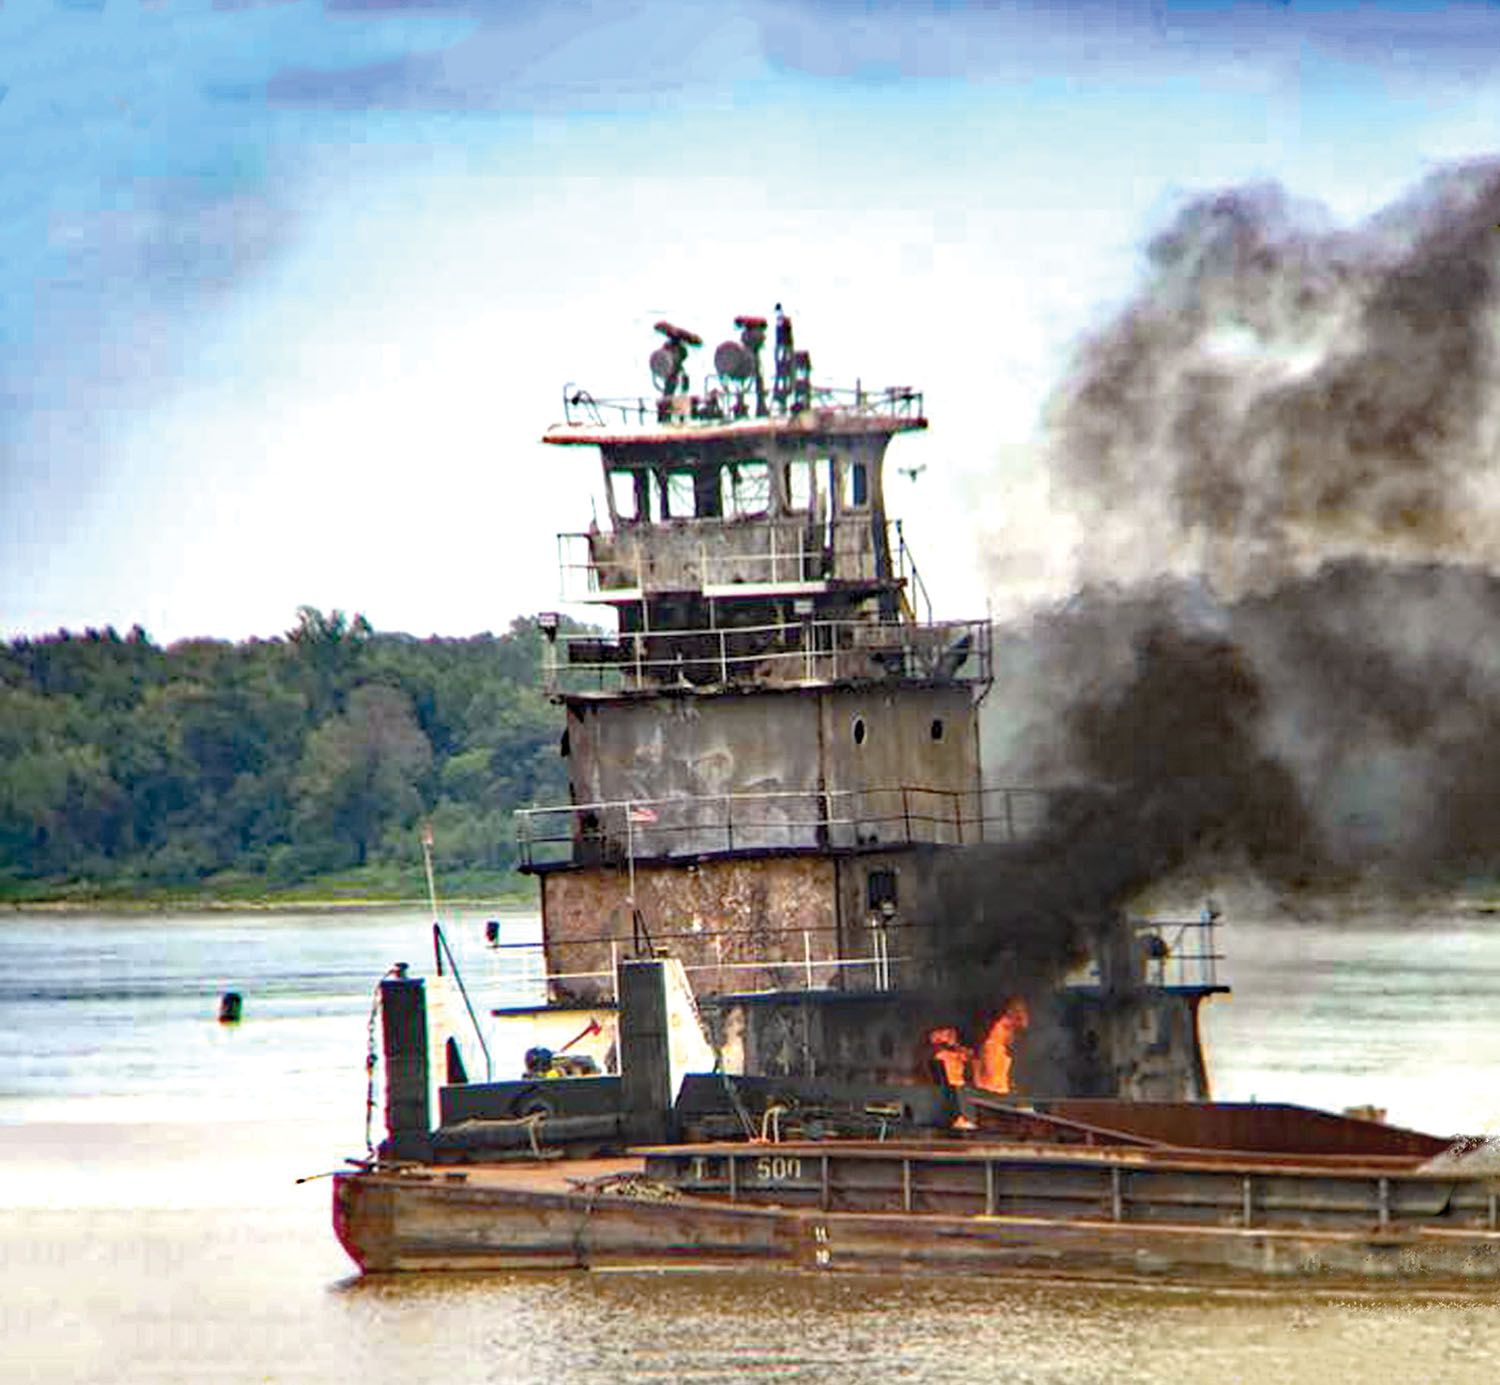 NTSB Reports On 2018 Towboat Fire